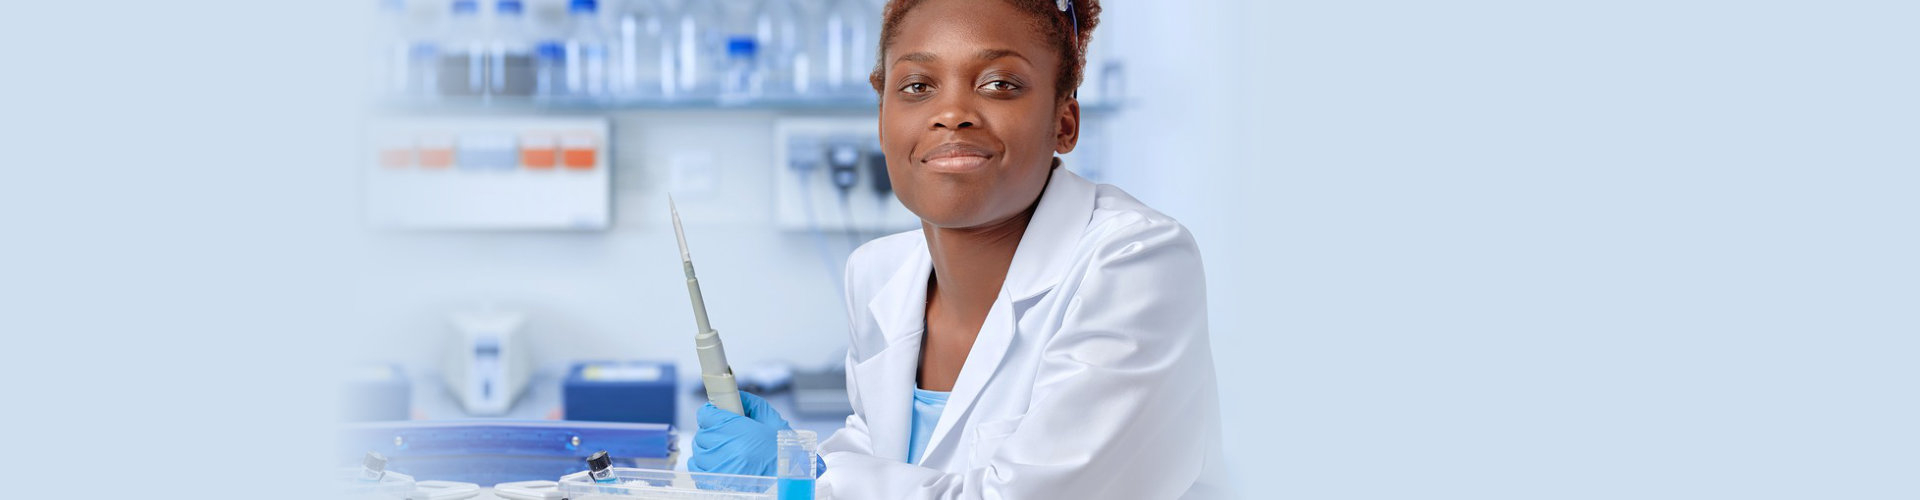 a pharmacist smiling at the camera